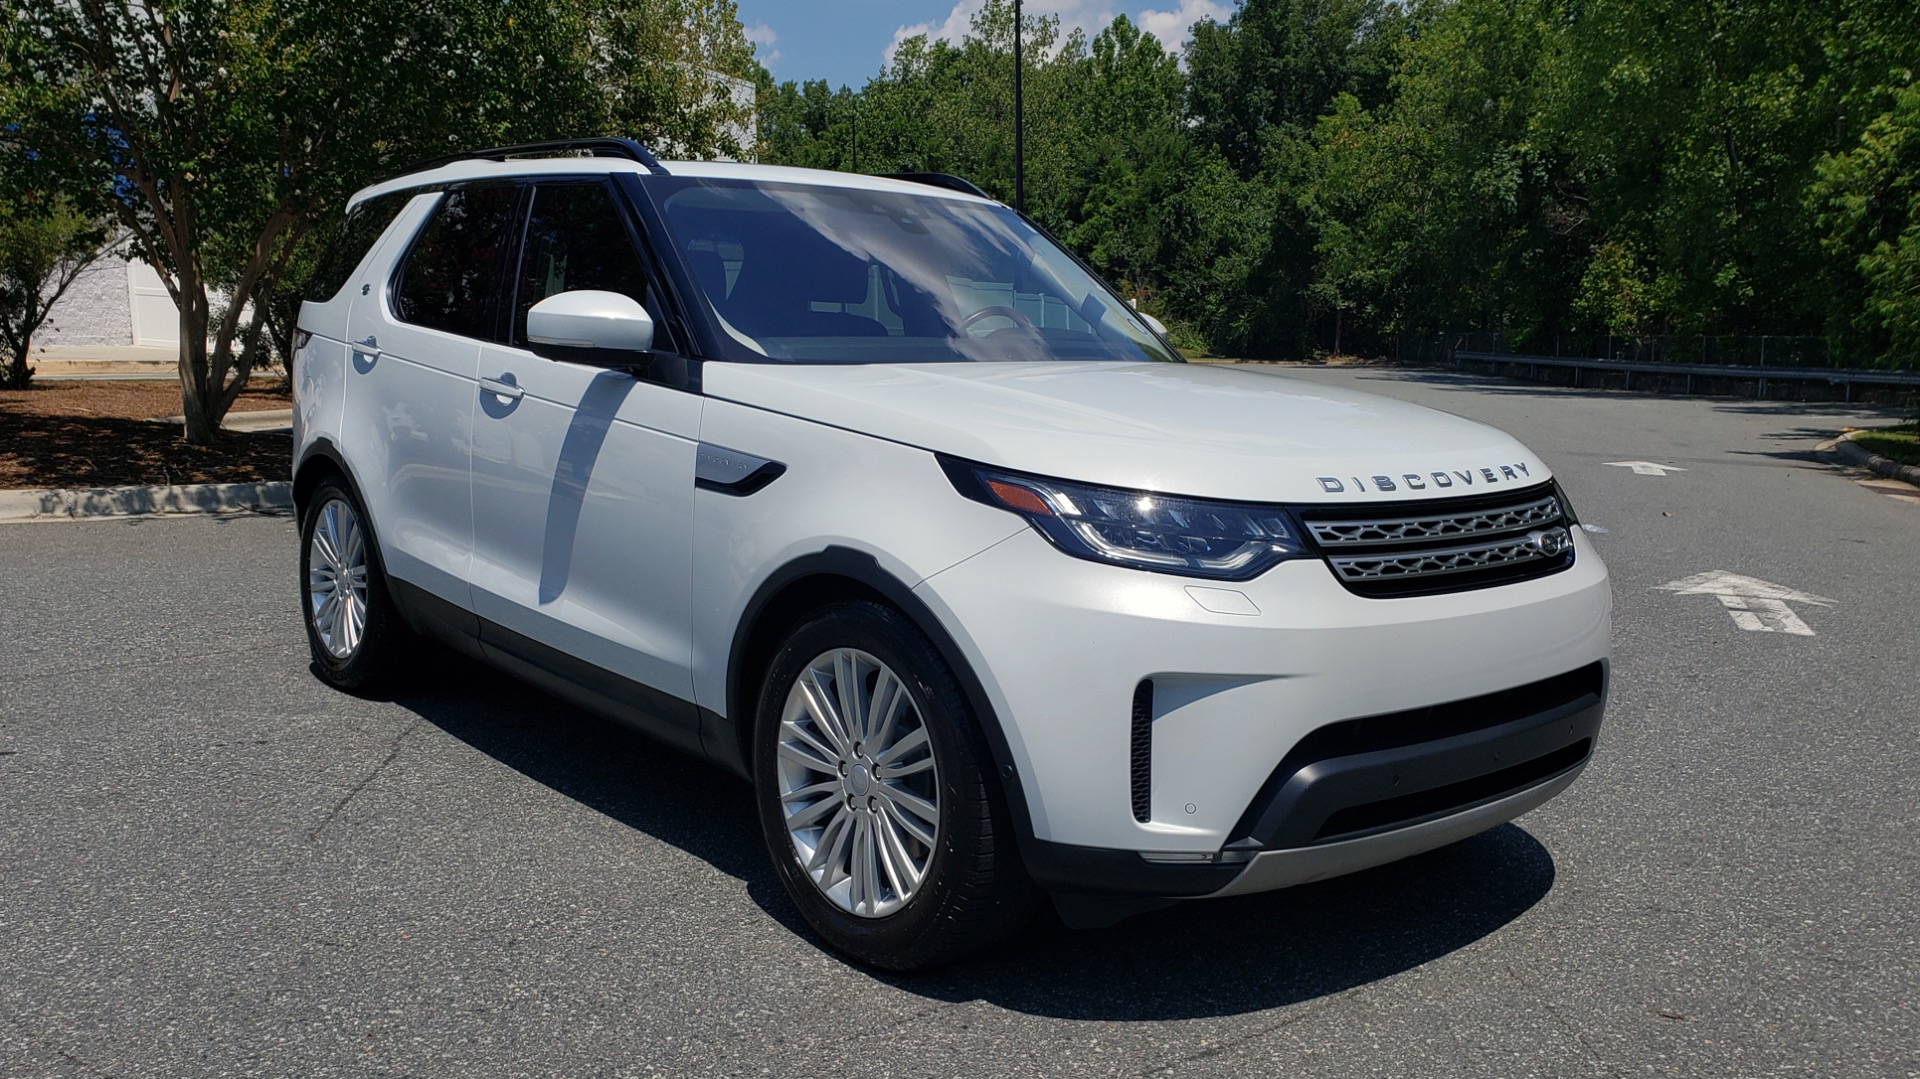 Used 2017 Land Rover DISCOVERY HSE LUXURY / SC V6 / NAV / DRIVE PRO / VISION ASSIST for sale Sold at Formula Imports in Charlotte NC 28227 4